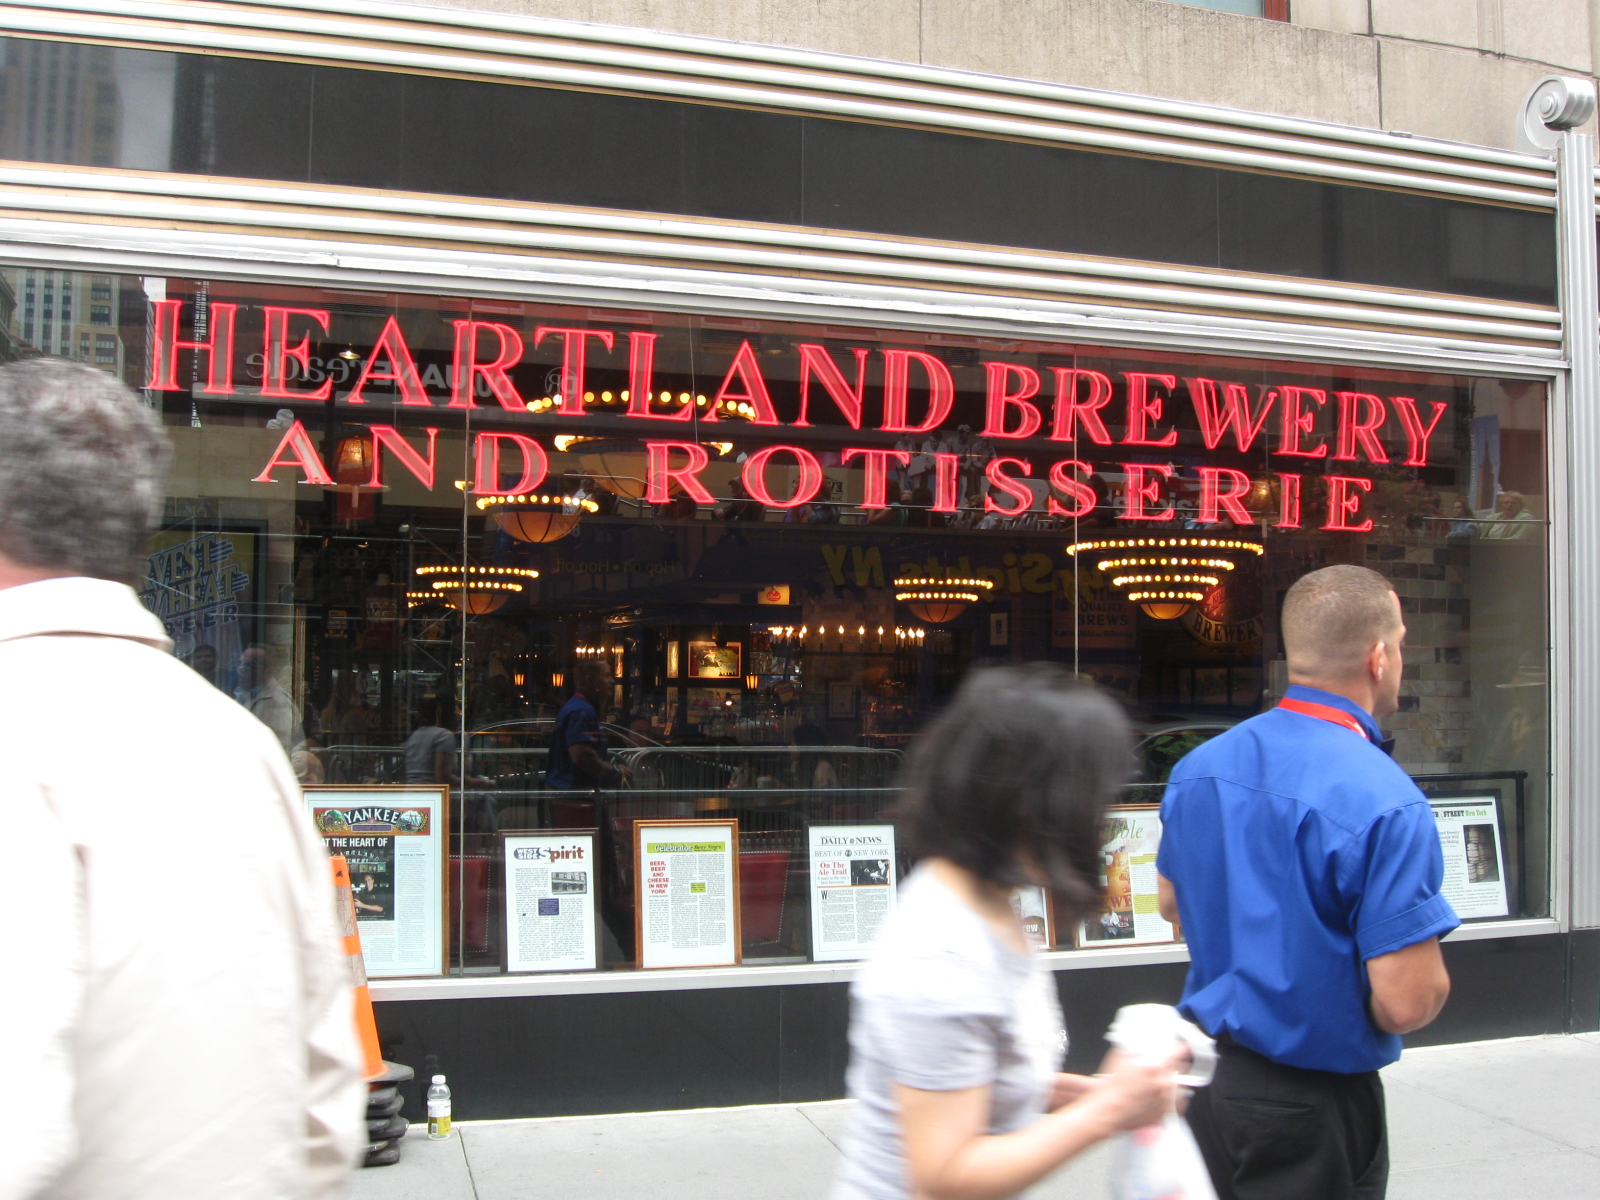 Heartland Brewery and Rotisserie 5th Avenue